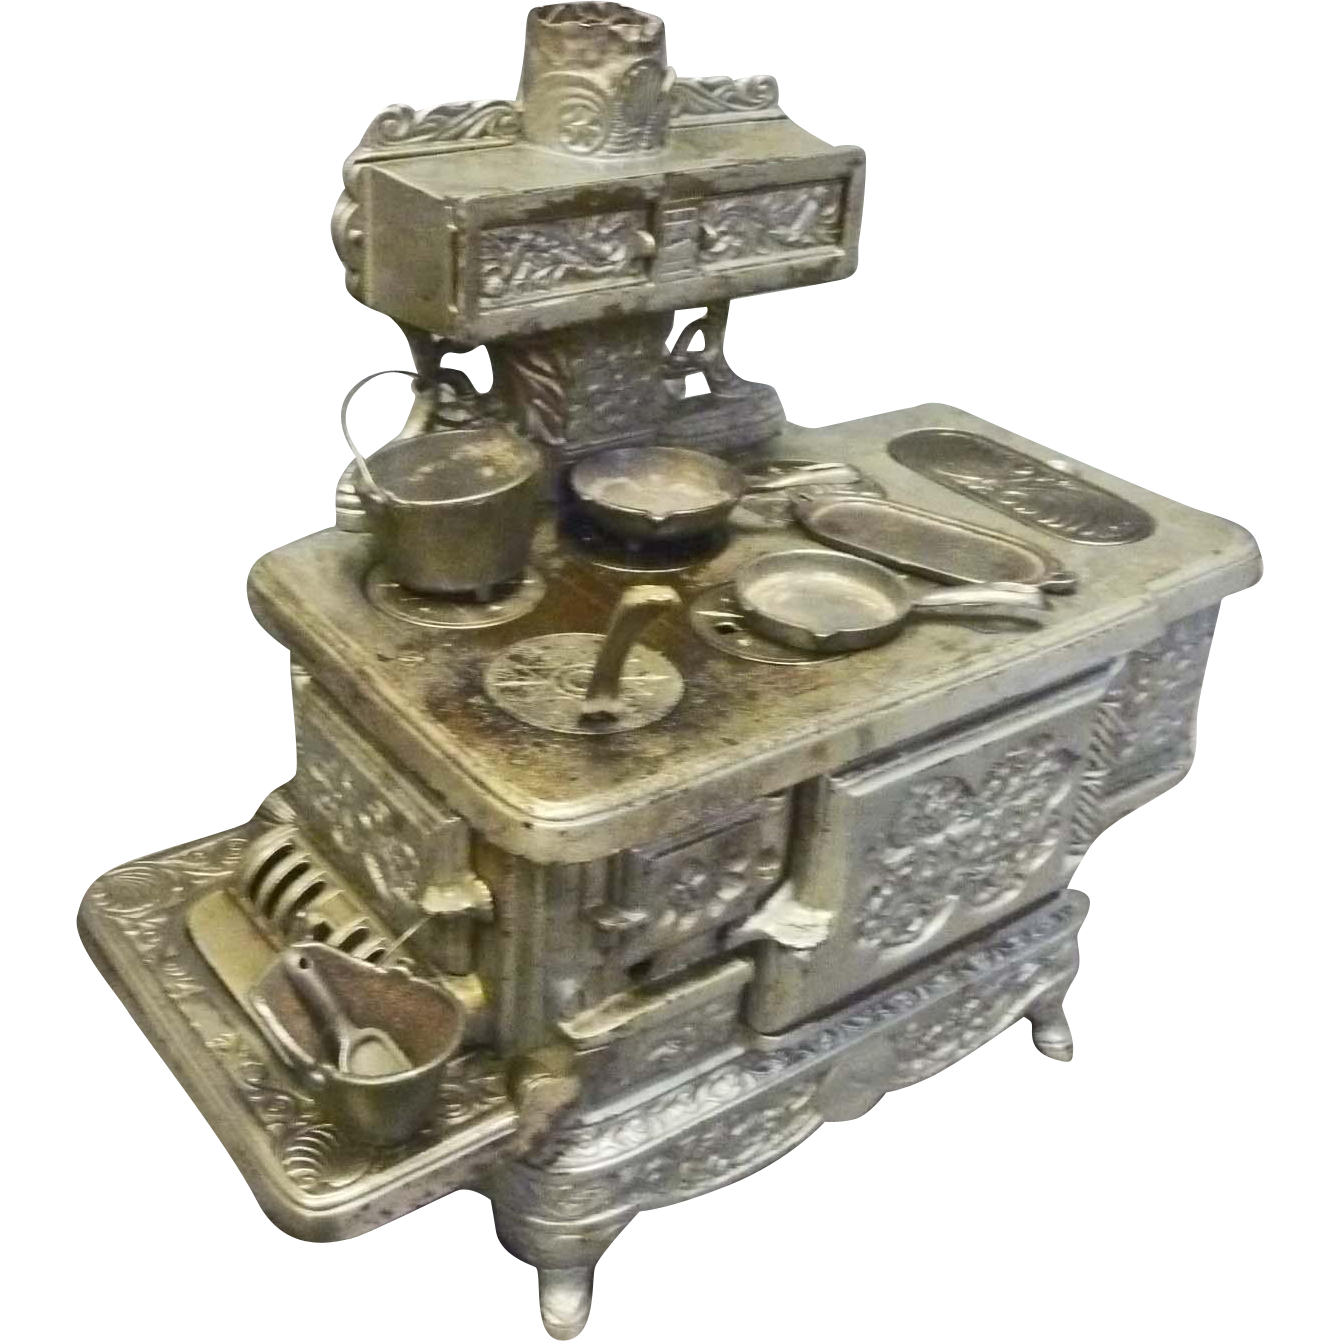 Child's Cast Iron Toy Stove - Rival